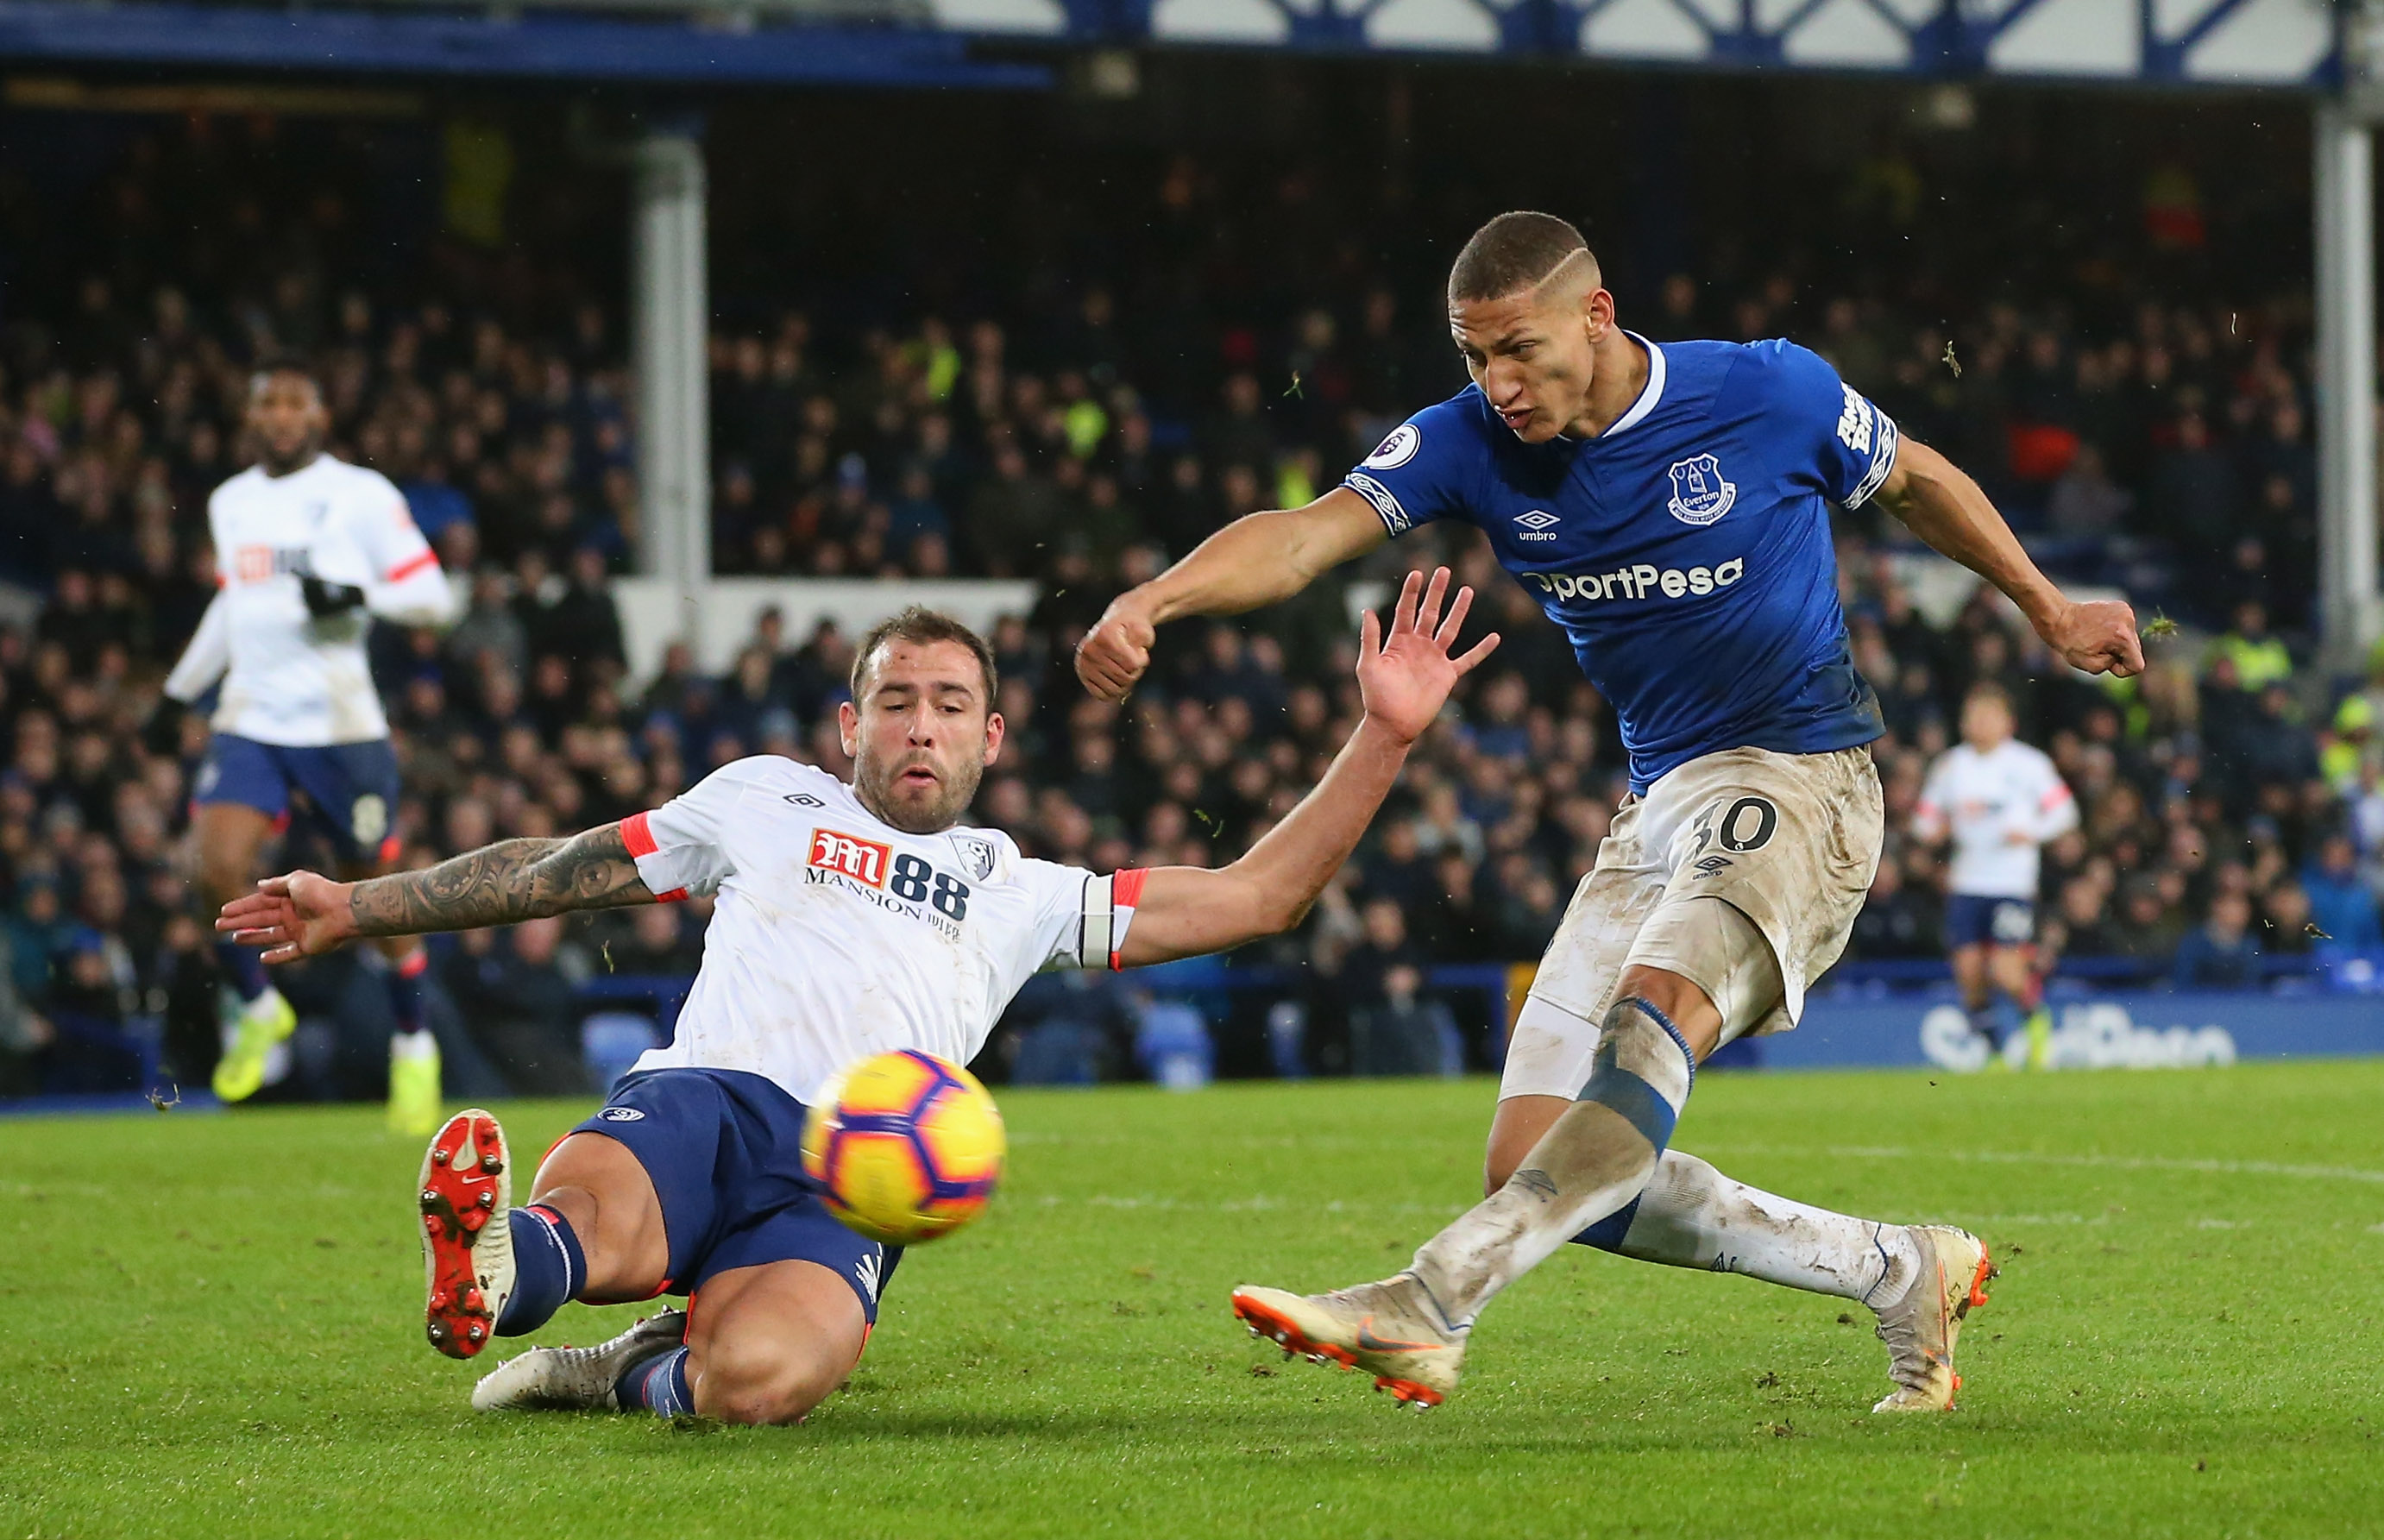 Everton at Bournemouth: Projected XI